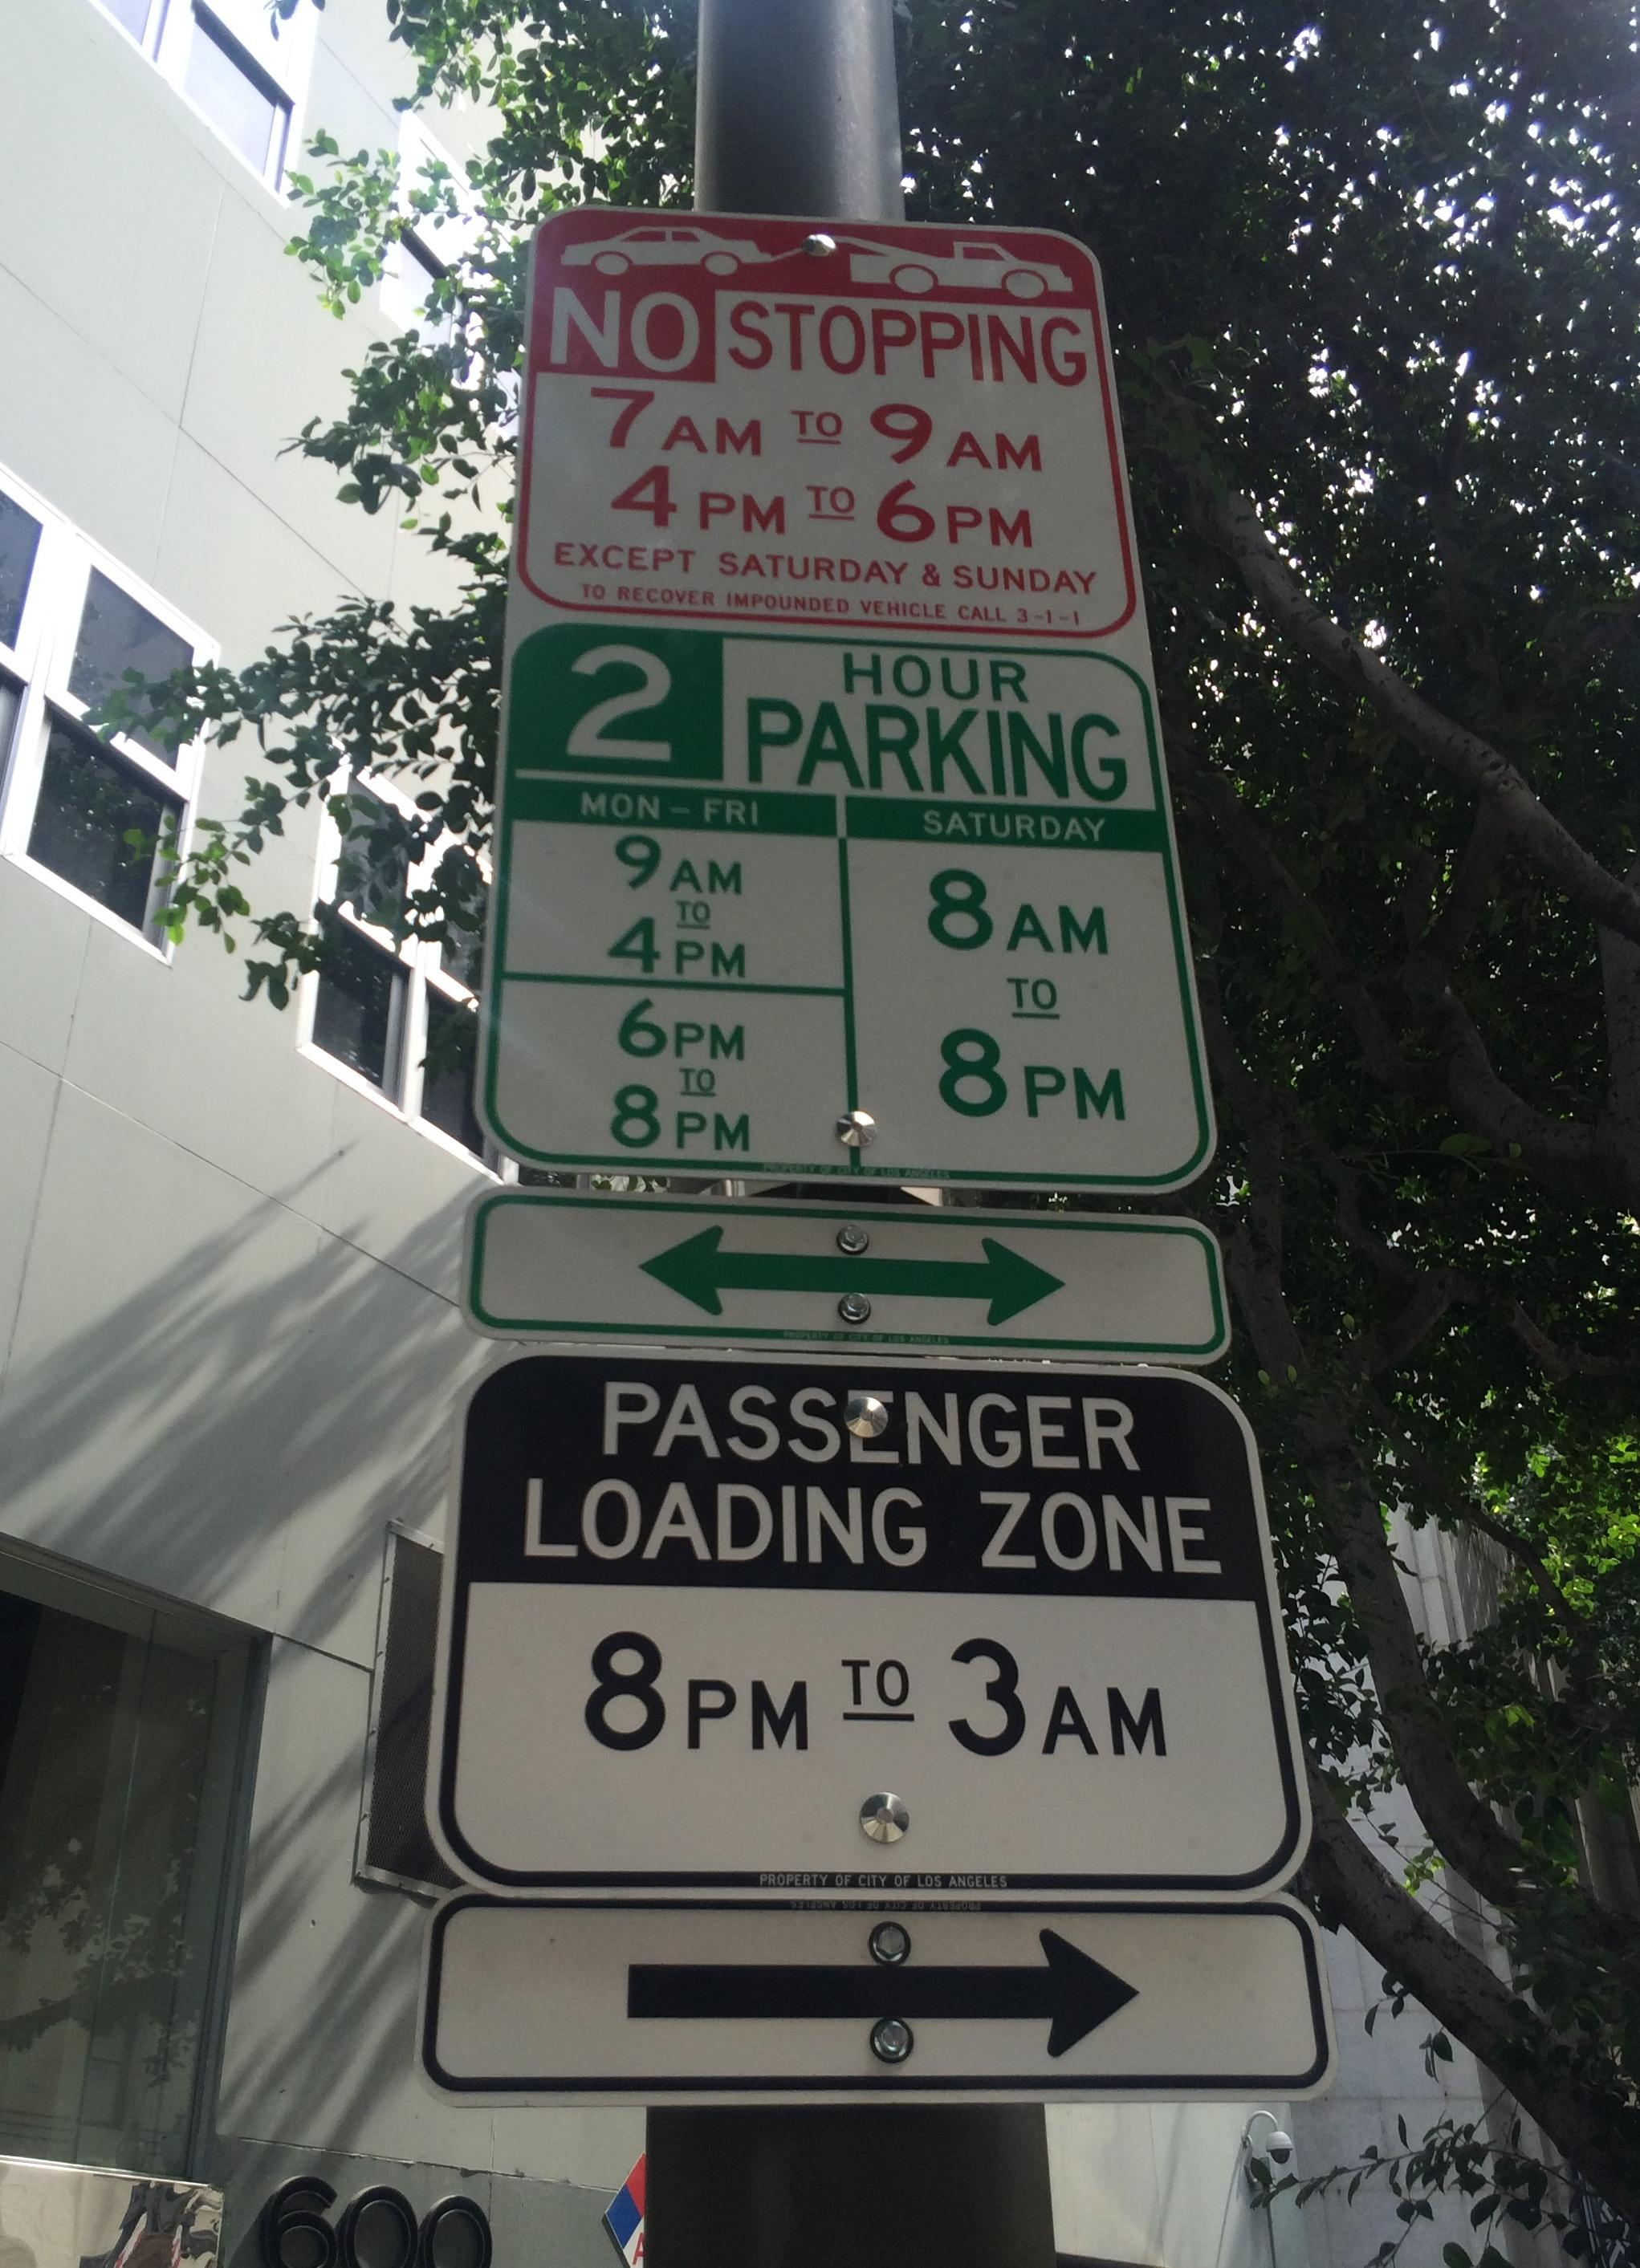 Los Angeles Current Parking System Assigns A Different Sign For Restrictions Sometimes Leading To Towers Of Signs Several Feet High